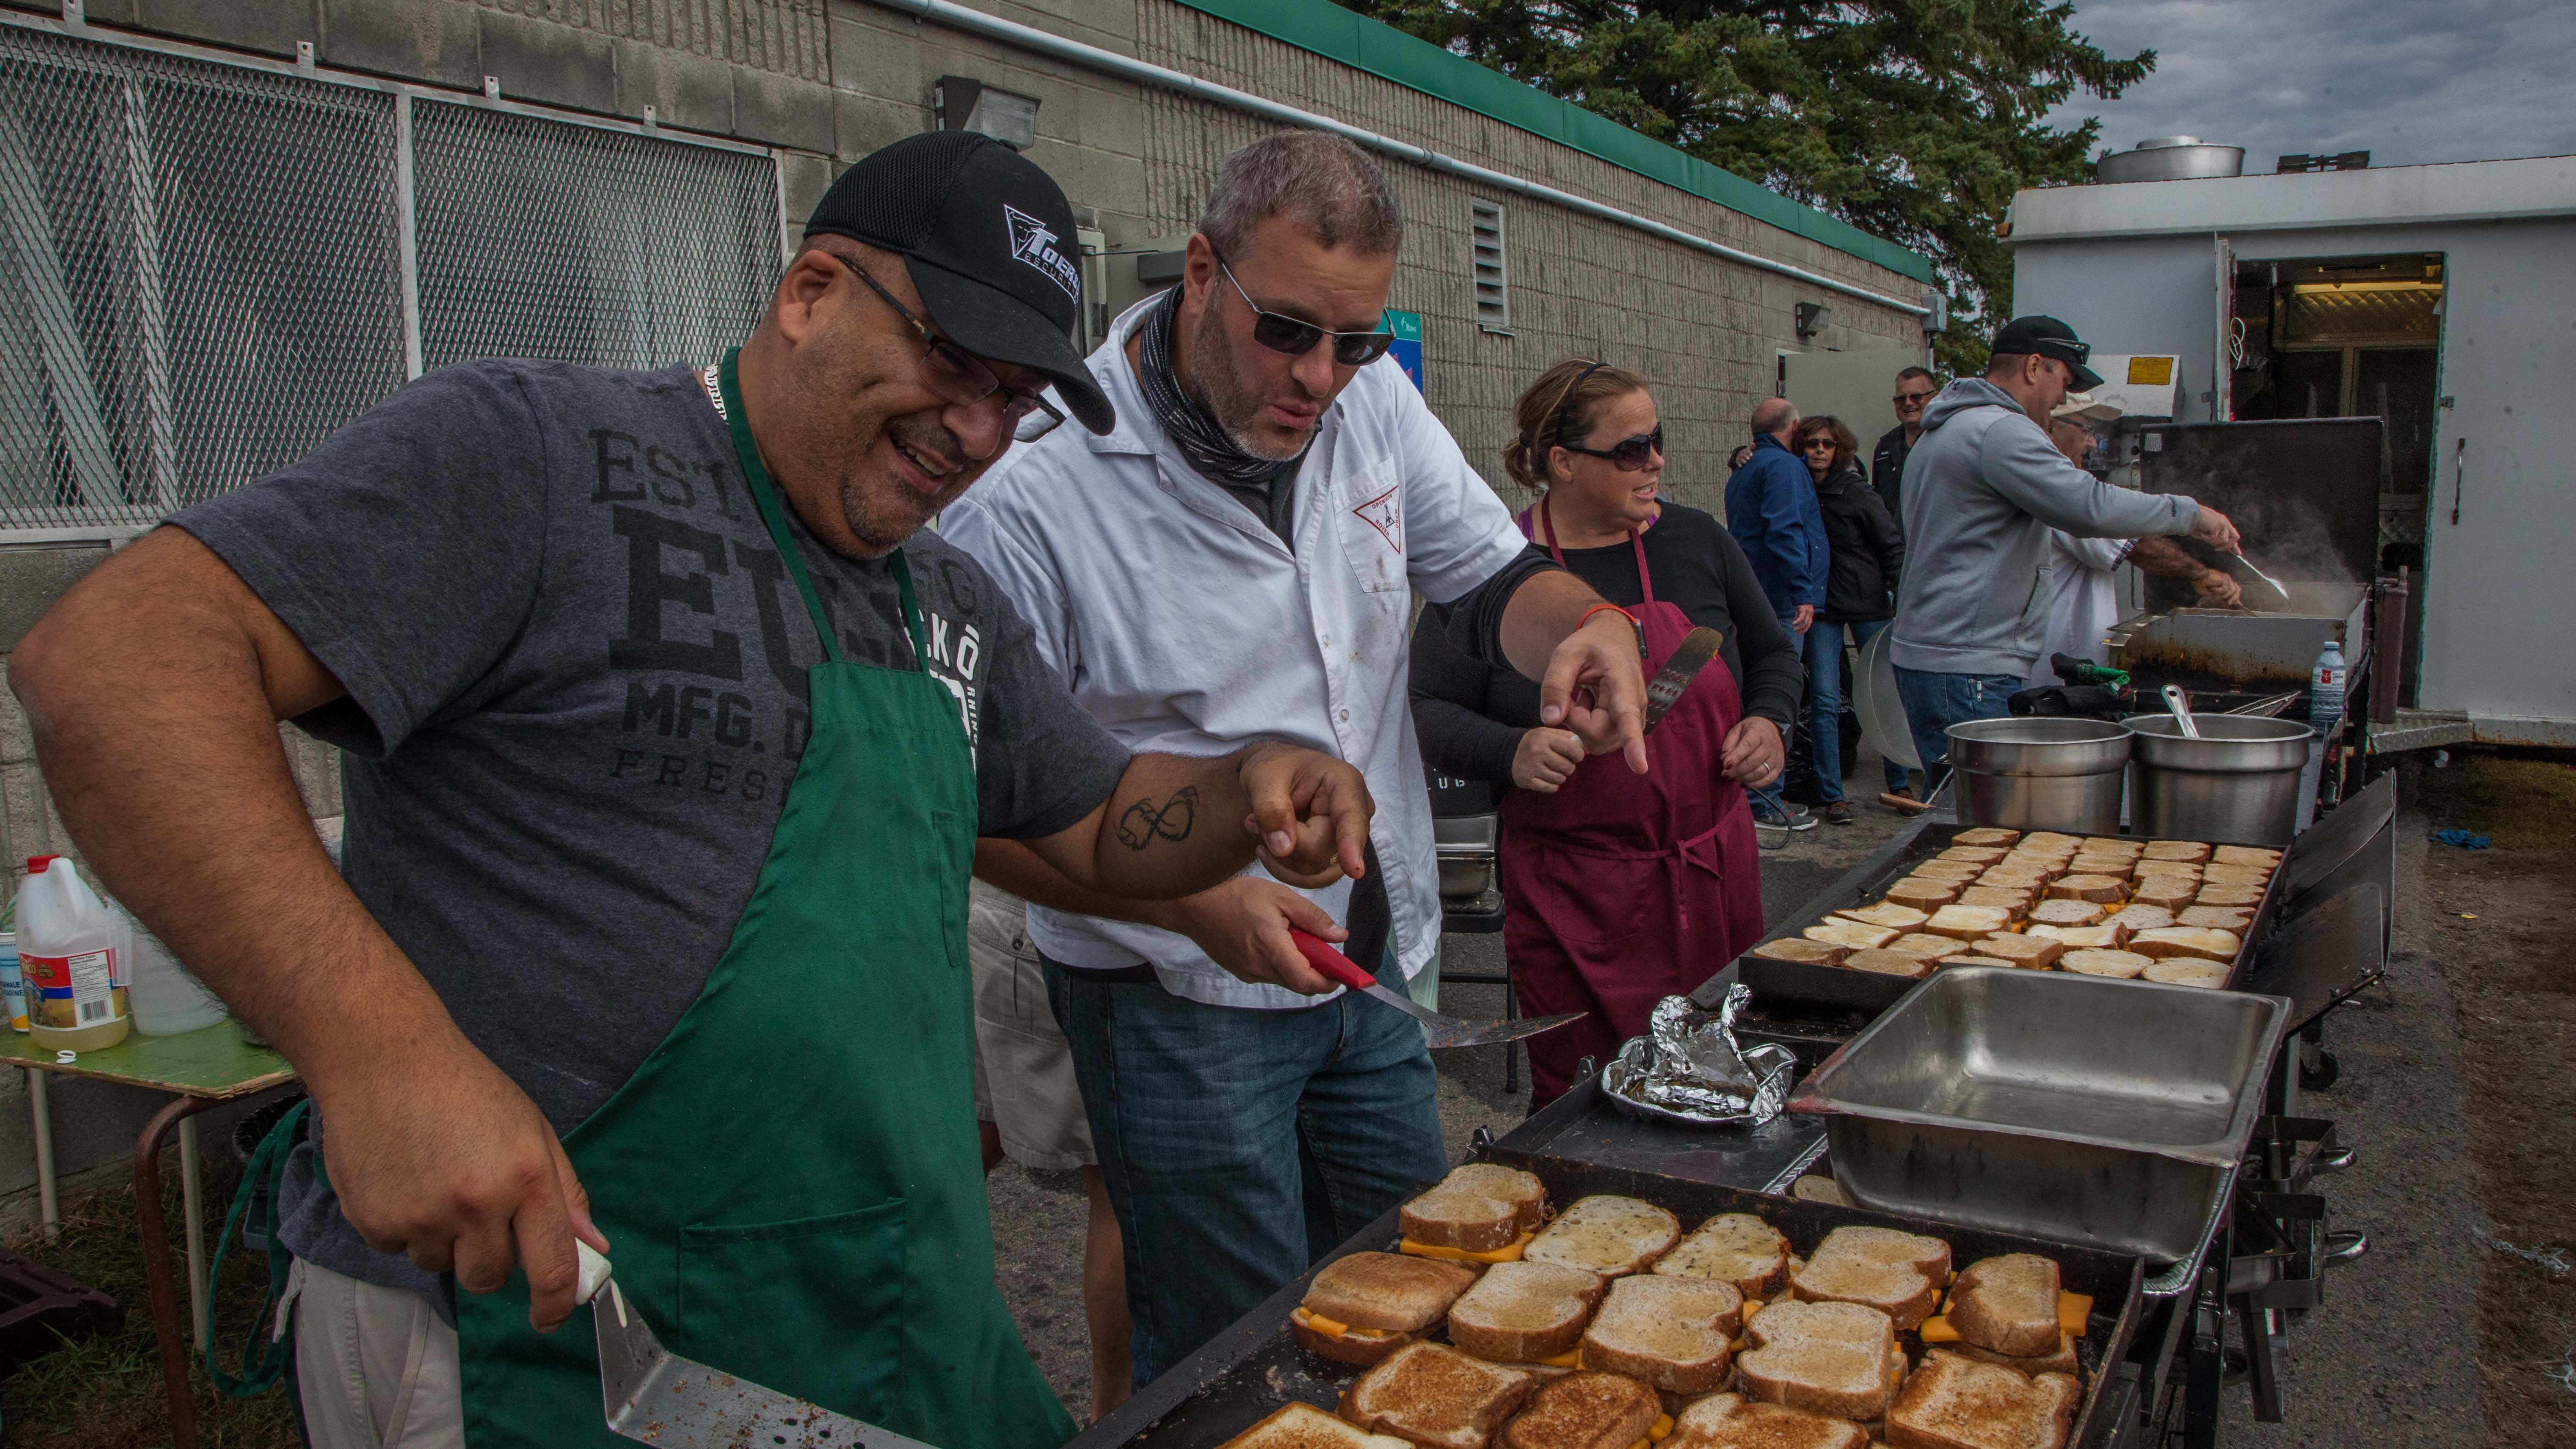 Volunteers make and hand out grilled cheese sandwiches in the Ottawa suburb of Barrhaven, where thousands were left without power the weekend after the storms. (Patrick Sauvé/Radio-Canada)